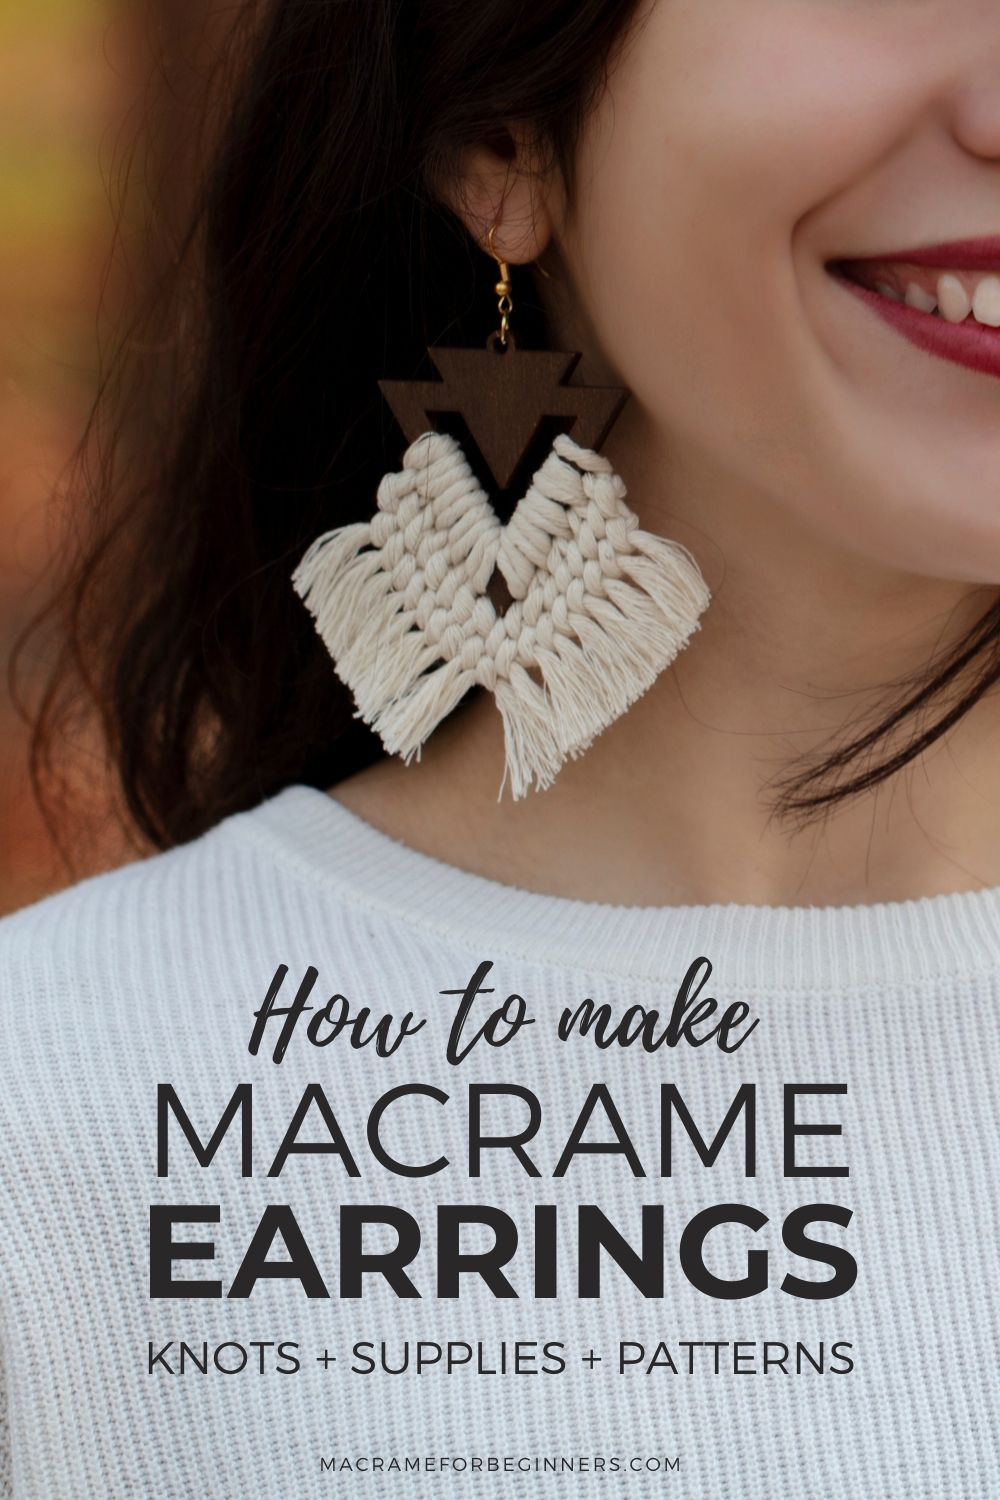 How to Make Macrame Earrings - Knots + Supplies + DIY Patterns